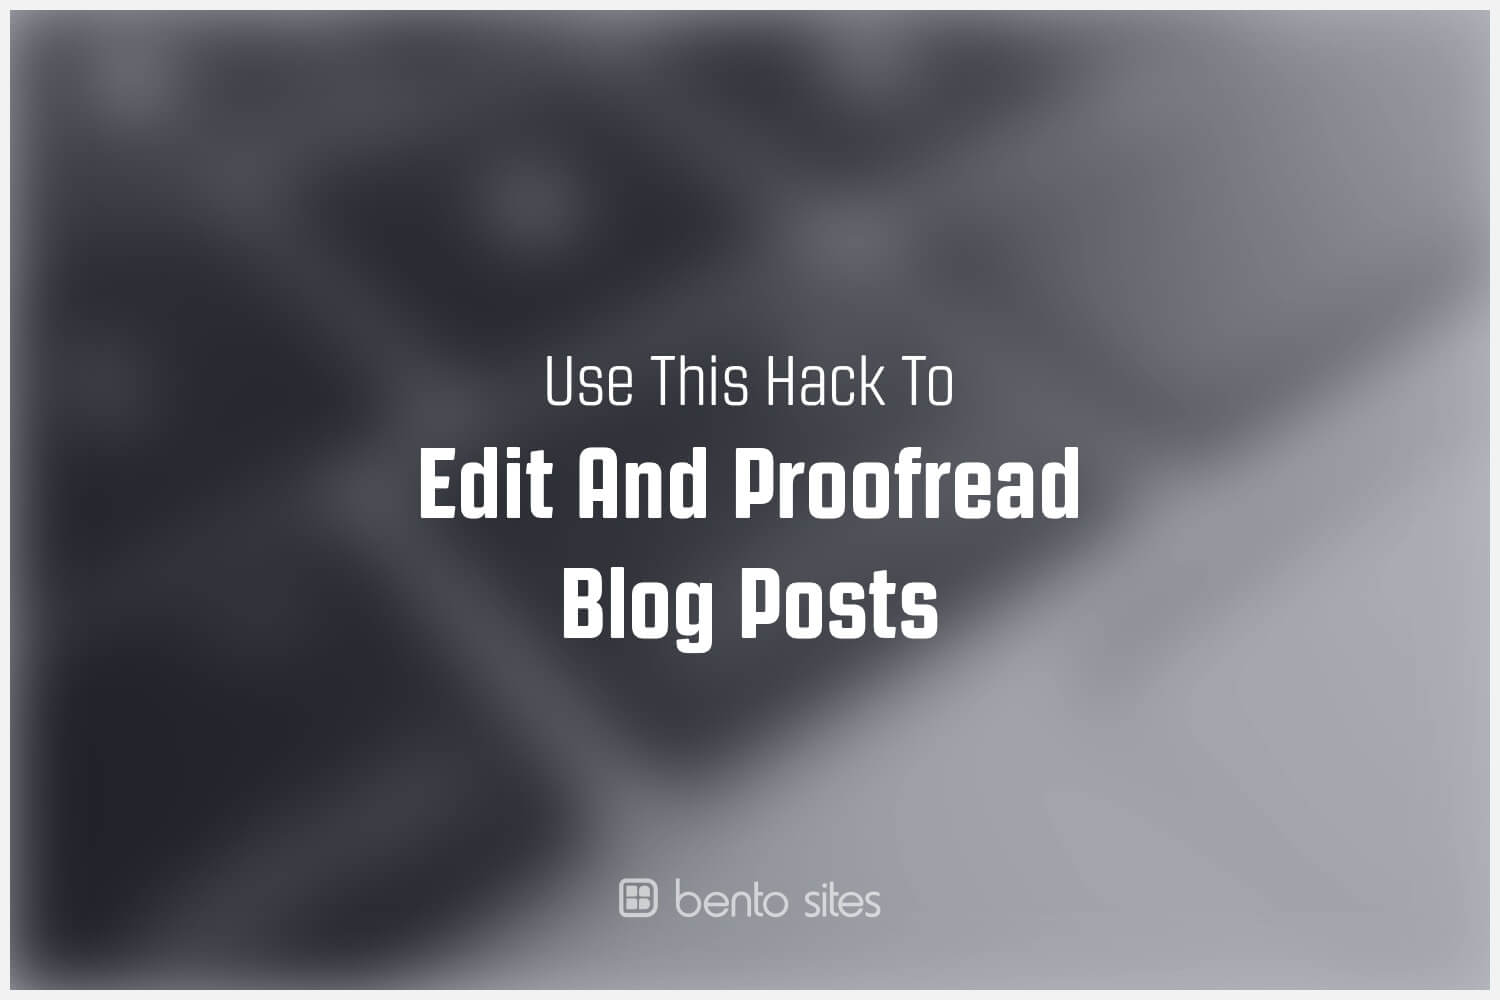 hack-to-edit-proofread-blog-posts